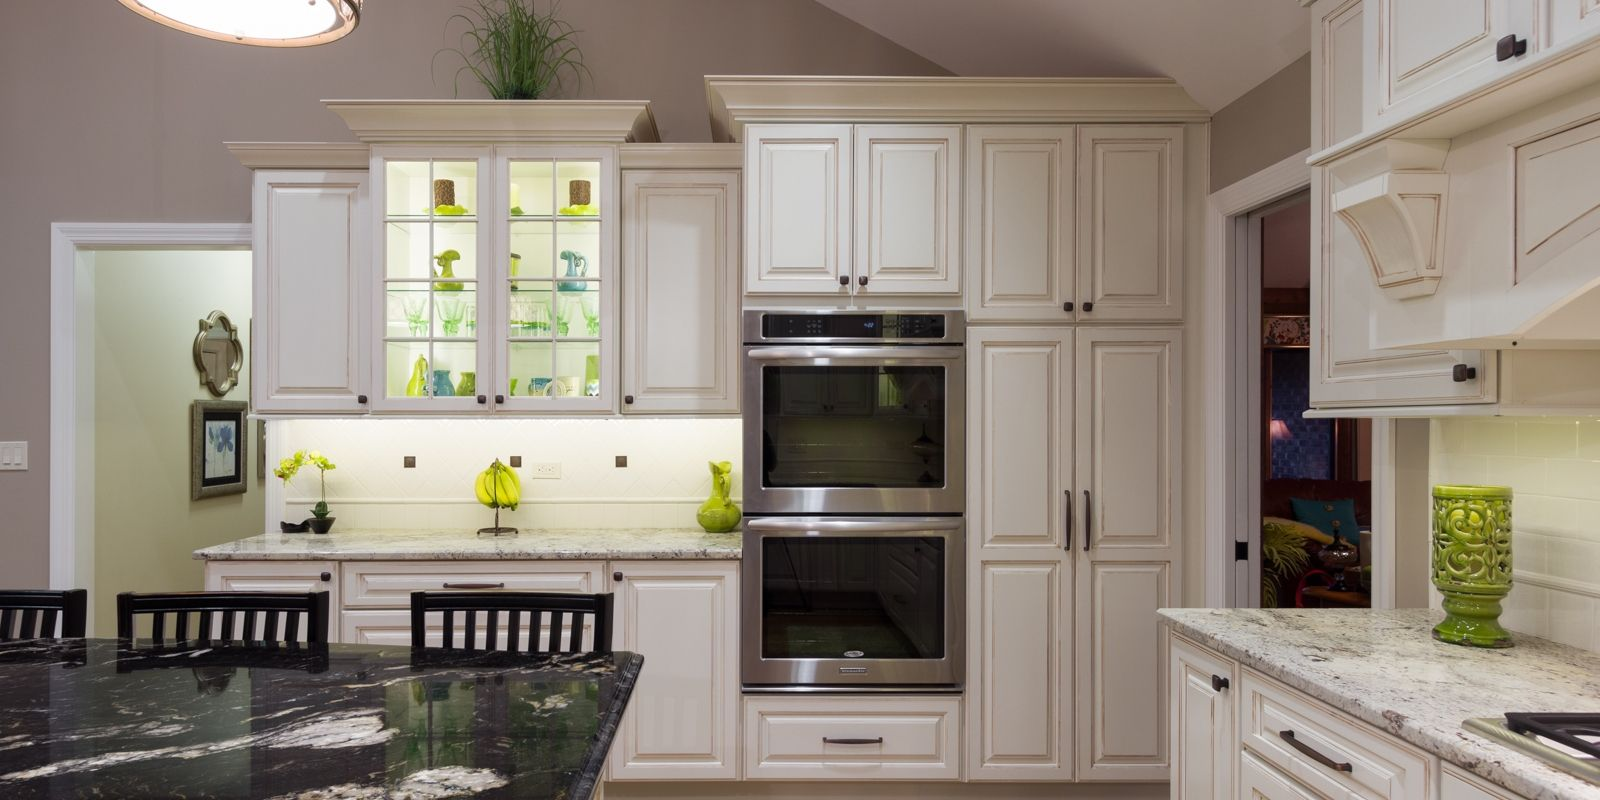 Sophisticated traditional cabinetry paired with top-of-the-line modern kitchen appliances.